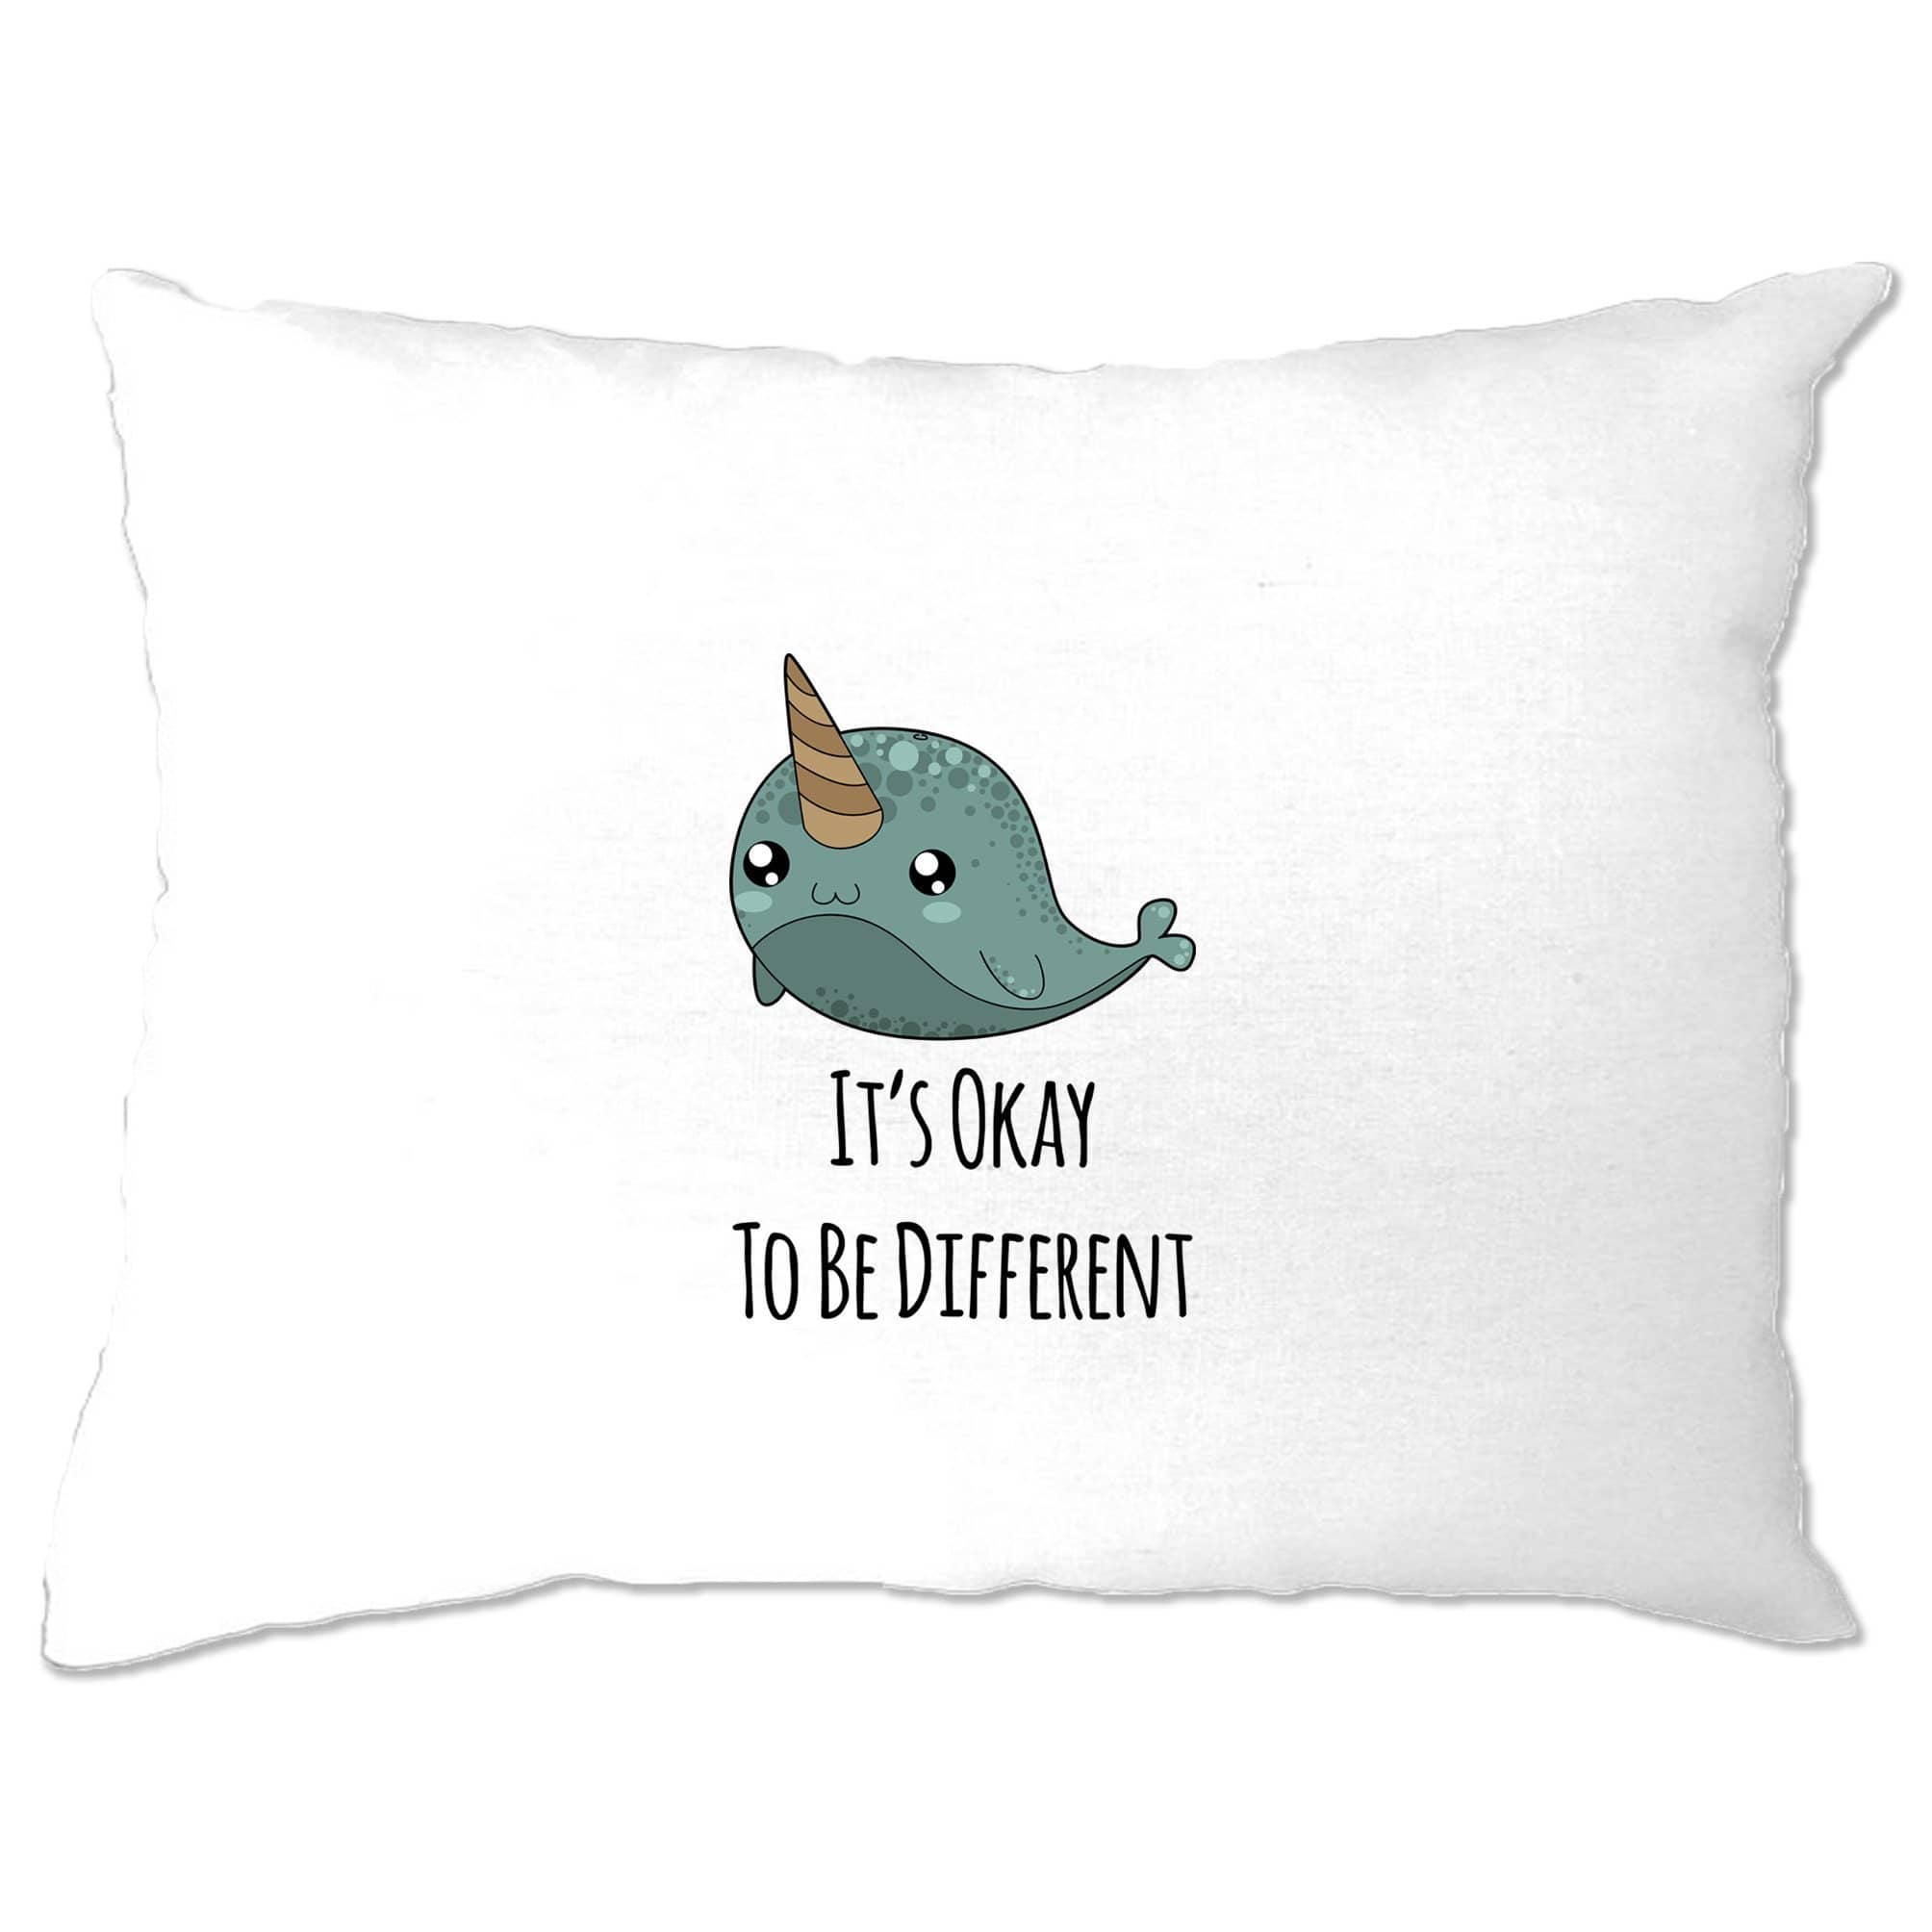 Cute Narwhal Pillow Case It's Okay To Be Different Slogan